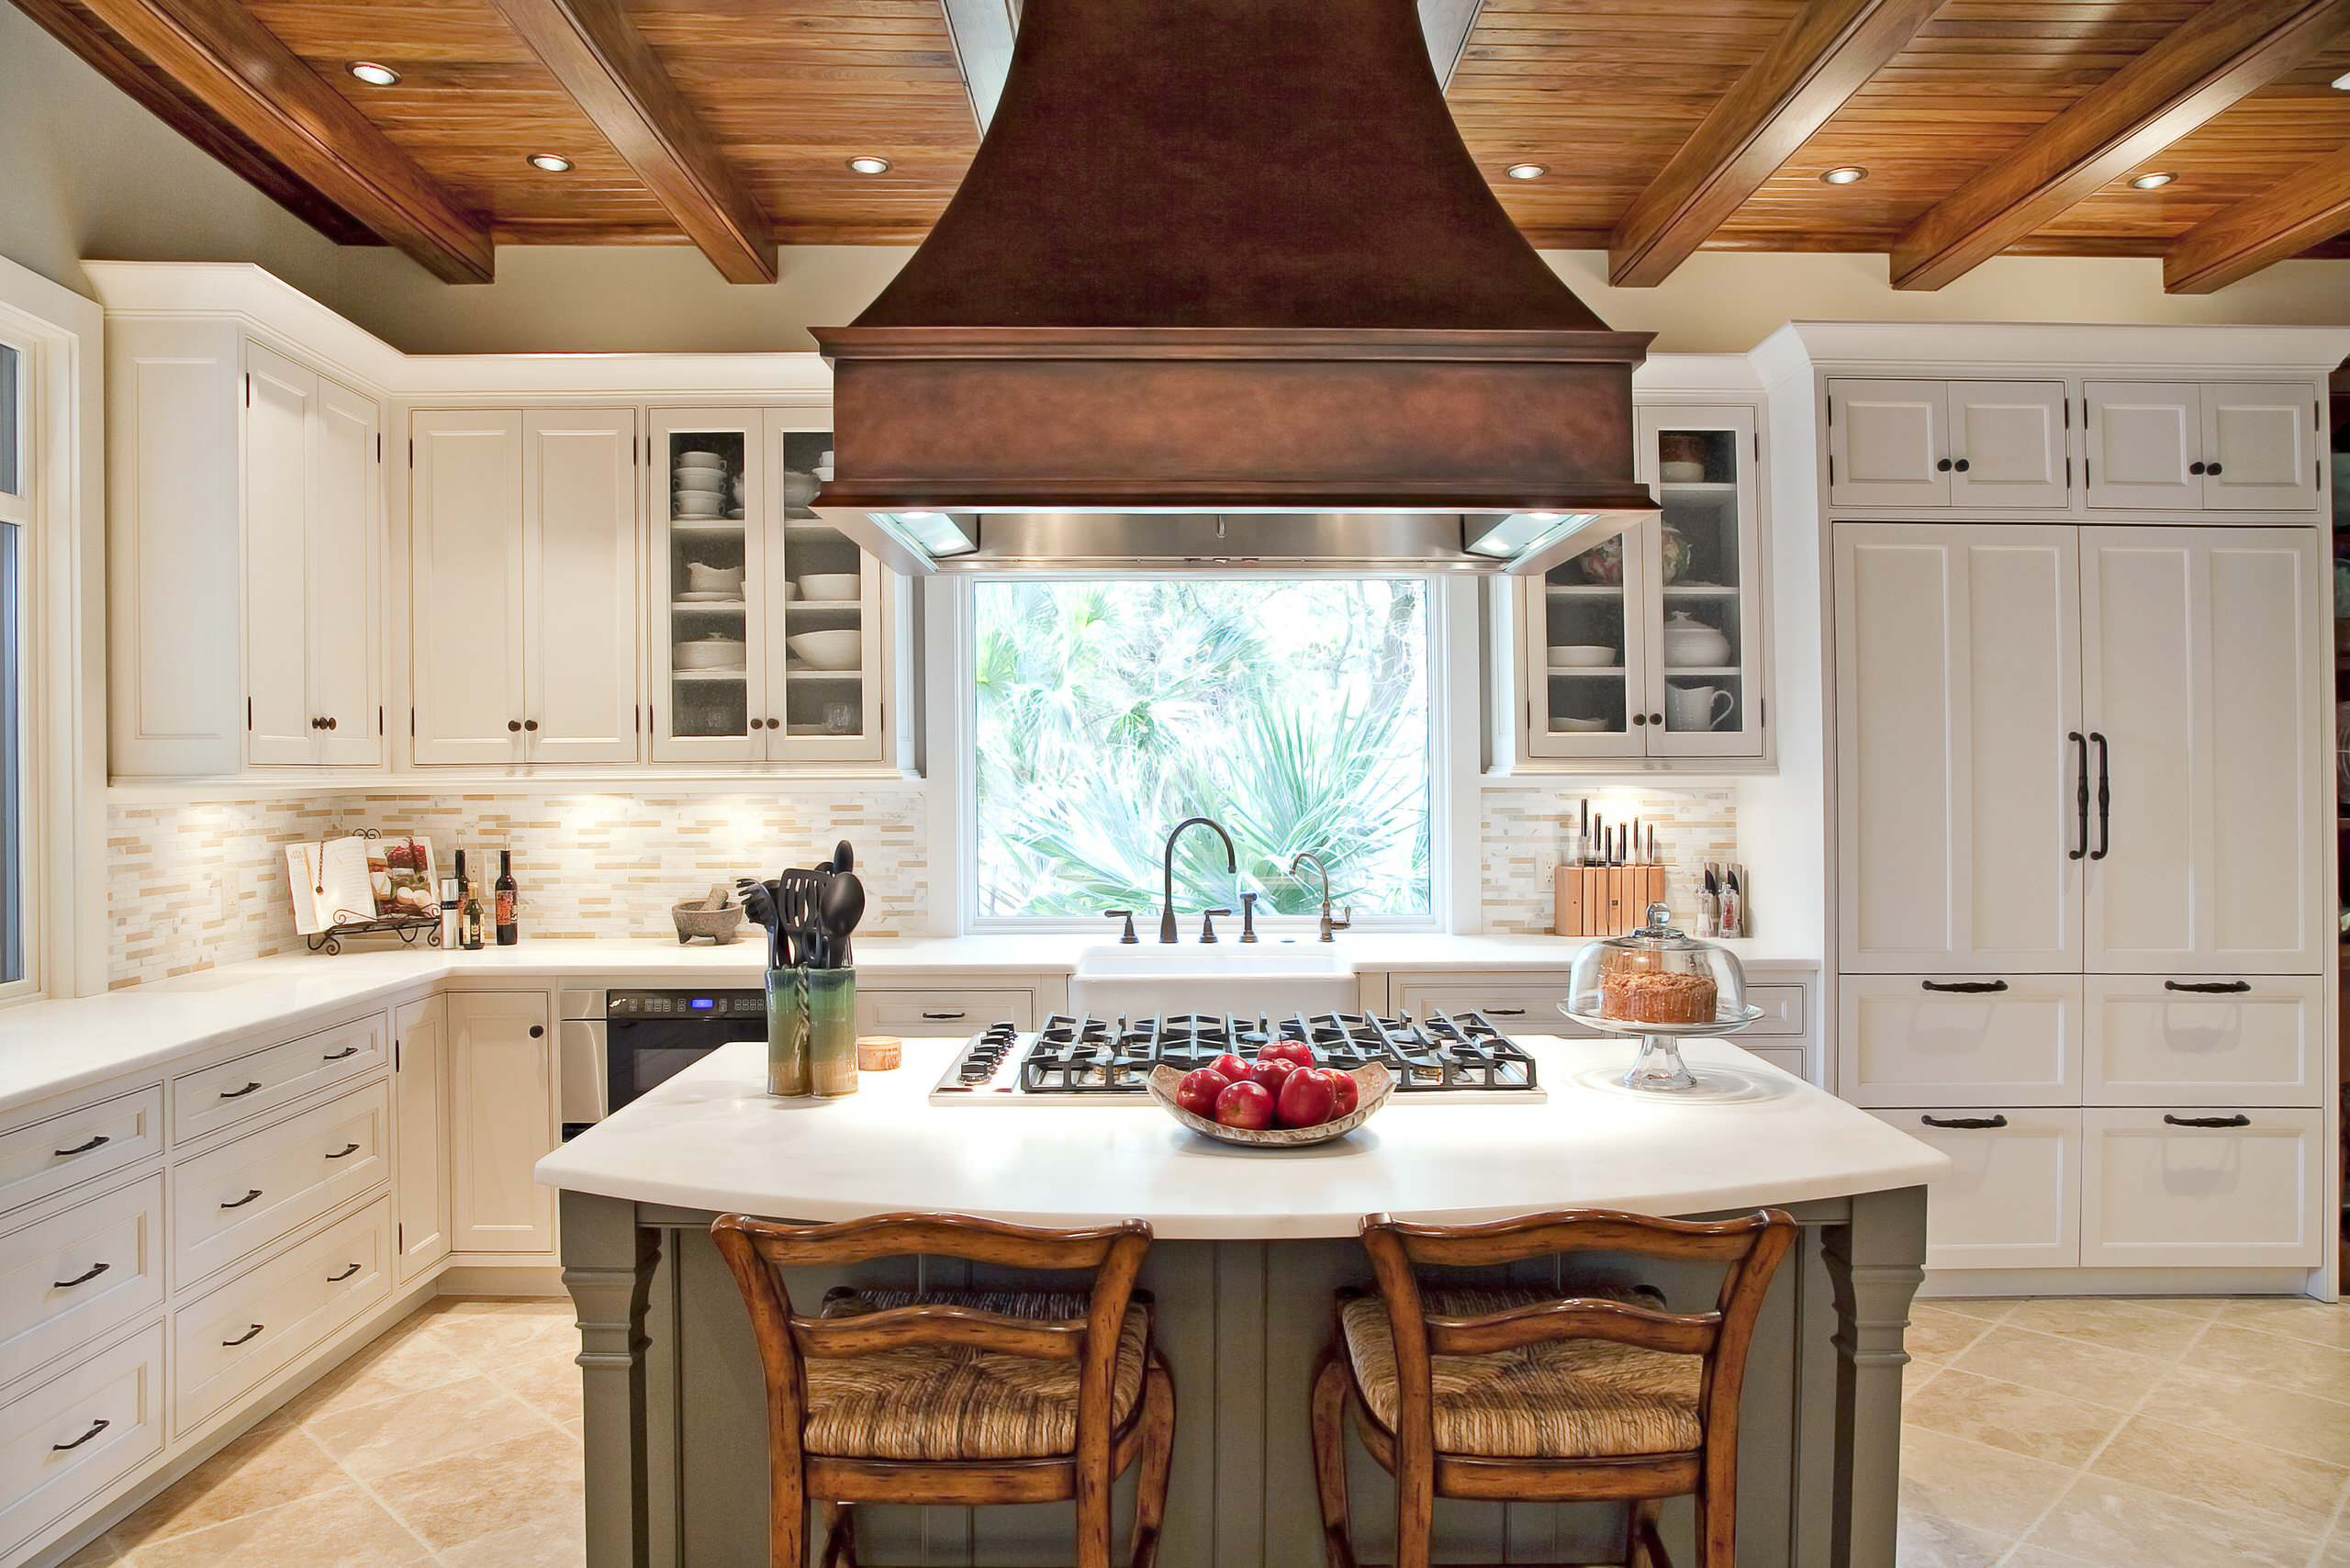 apron front sink and copper range hoods also glass front cabinets in integrated kitchen plus rush - Copper Range Hoods